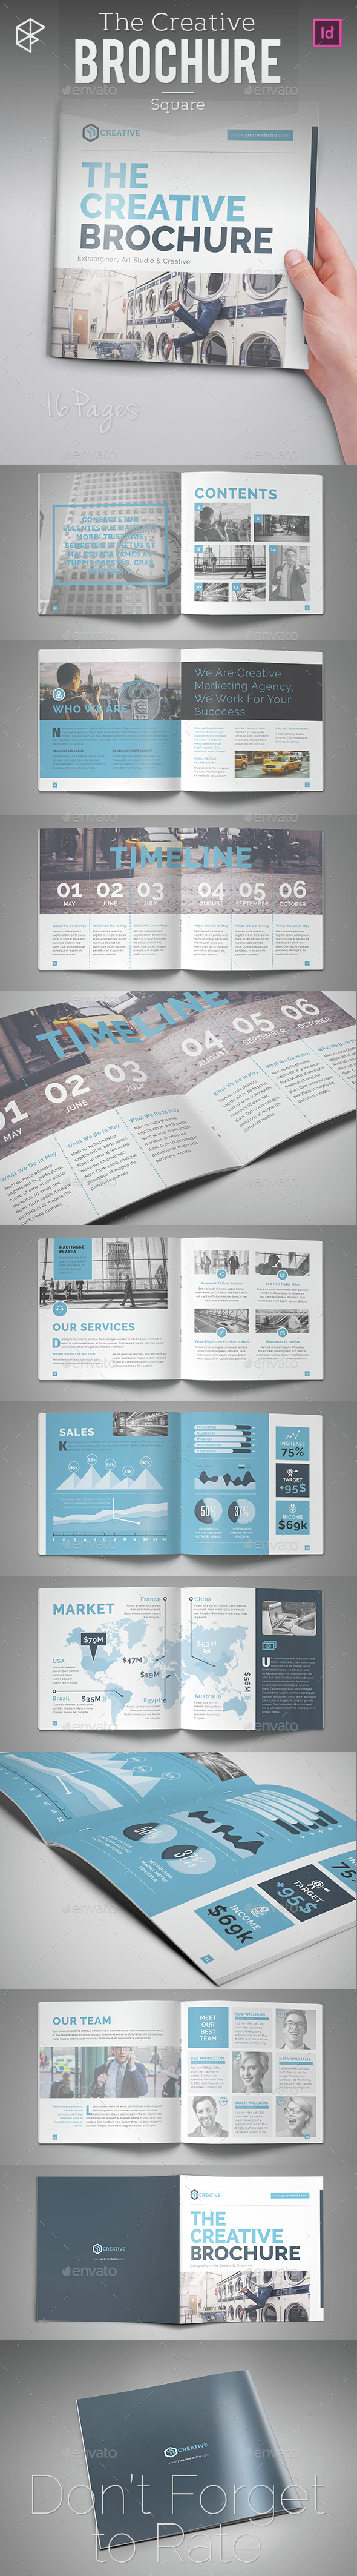 The Creative Brochure - Square - Corporate Brochures